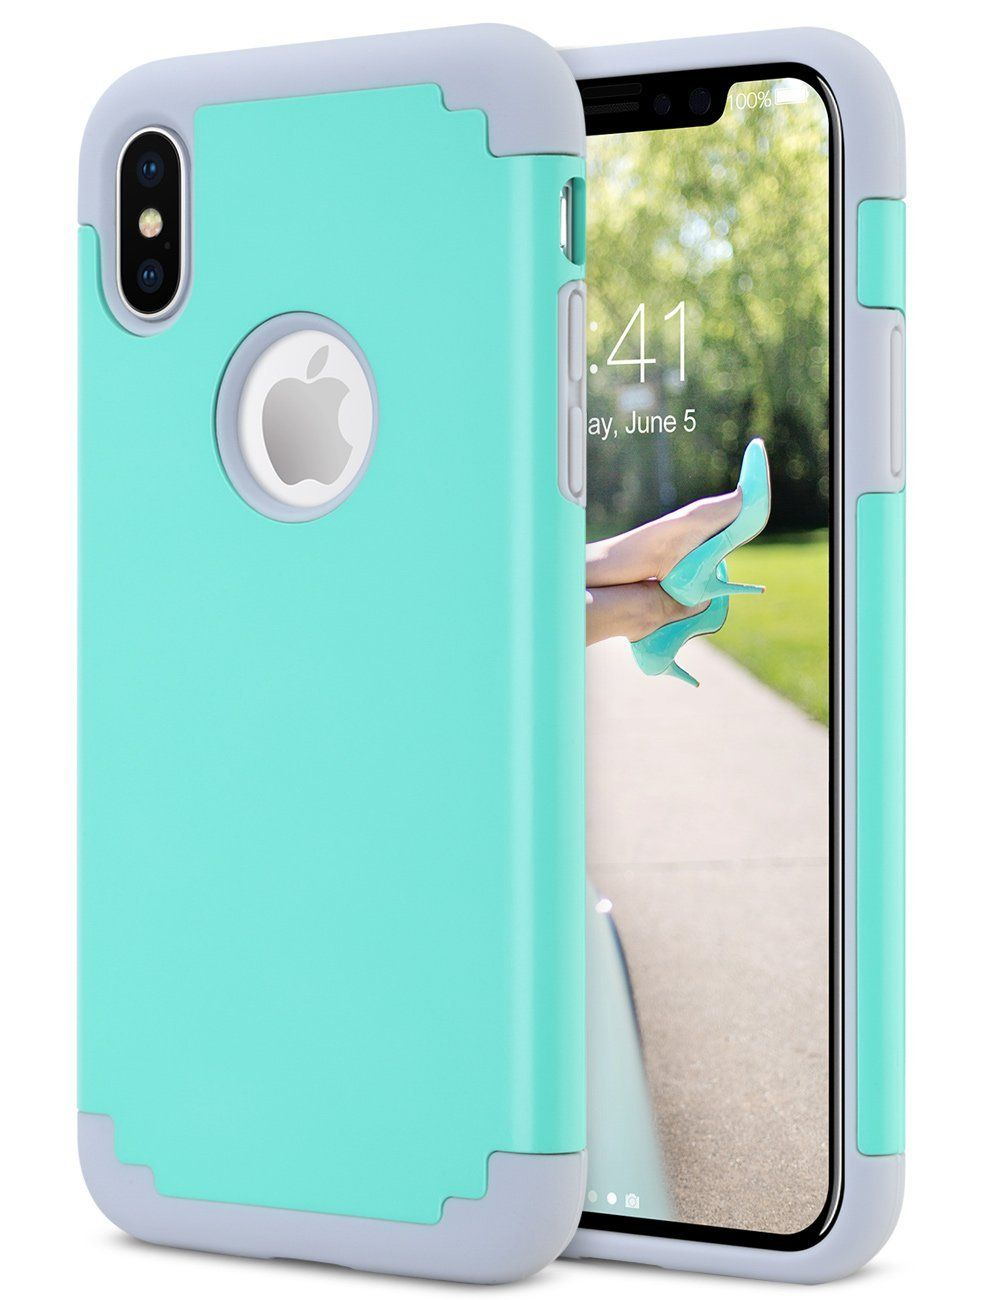 f2ed31297cc0 iPhone X Case Mint Green Cute for Girls